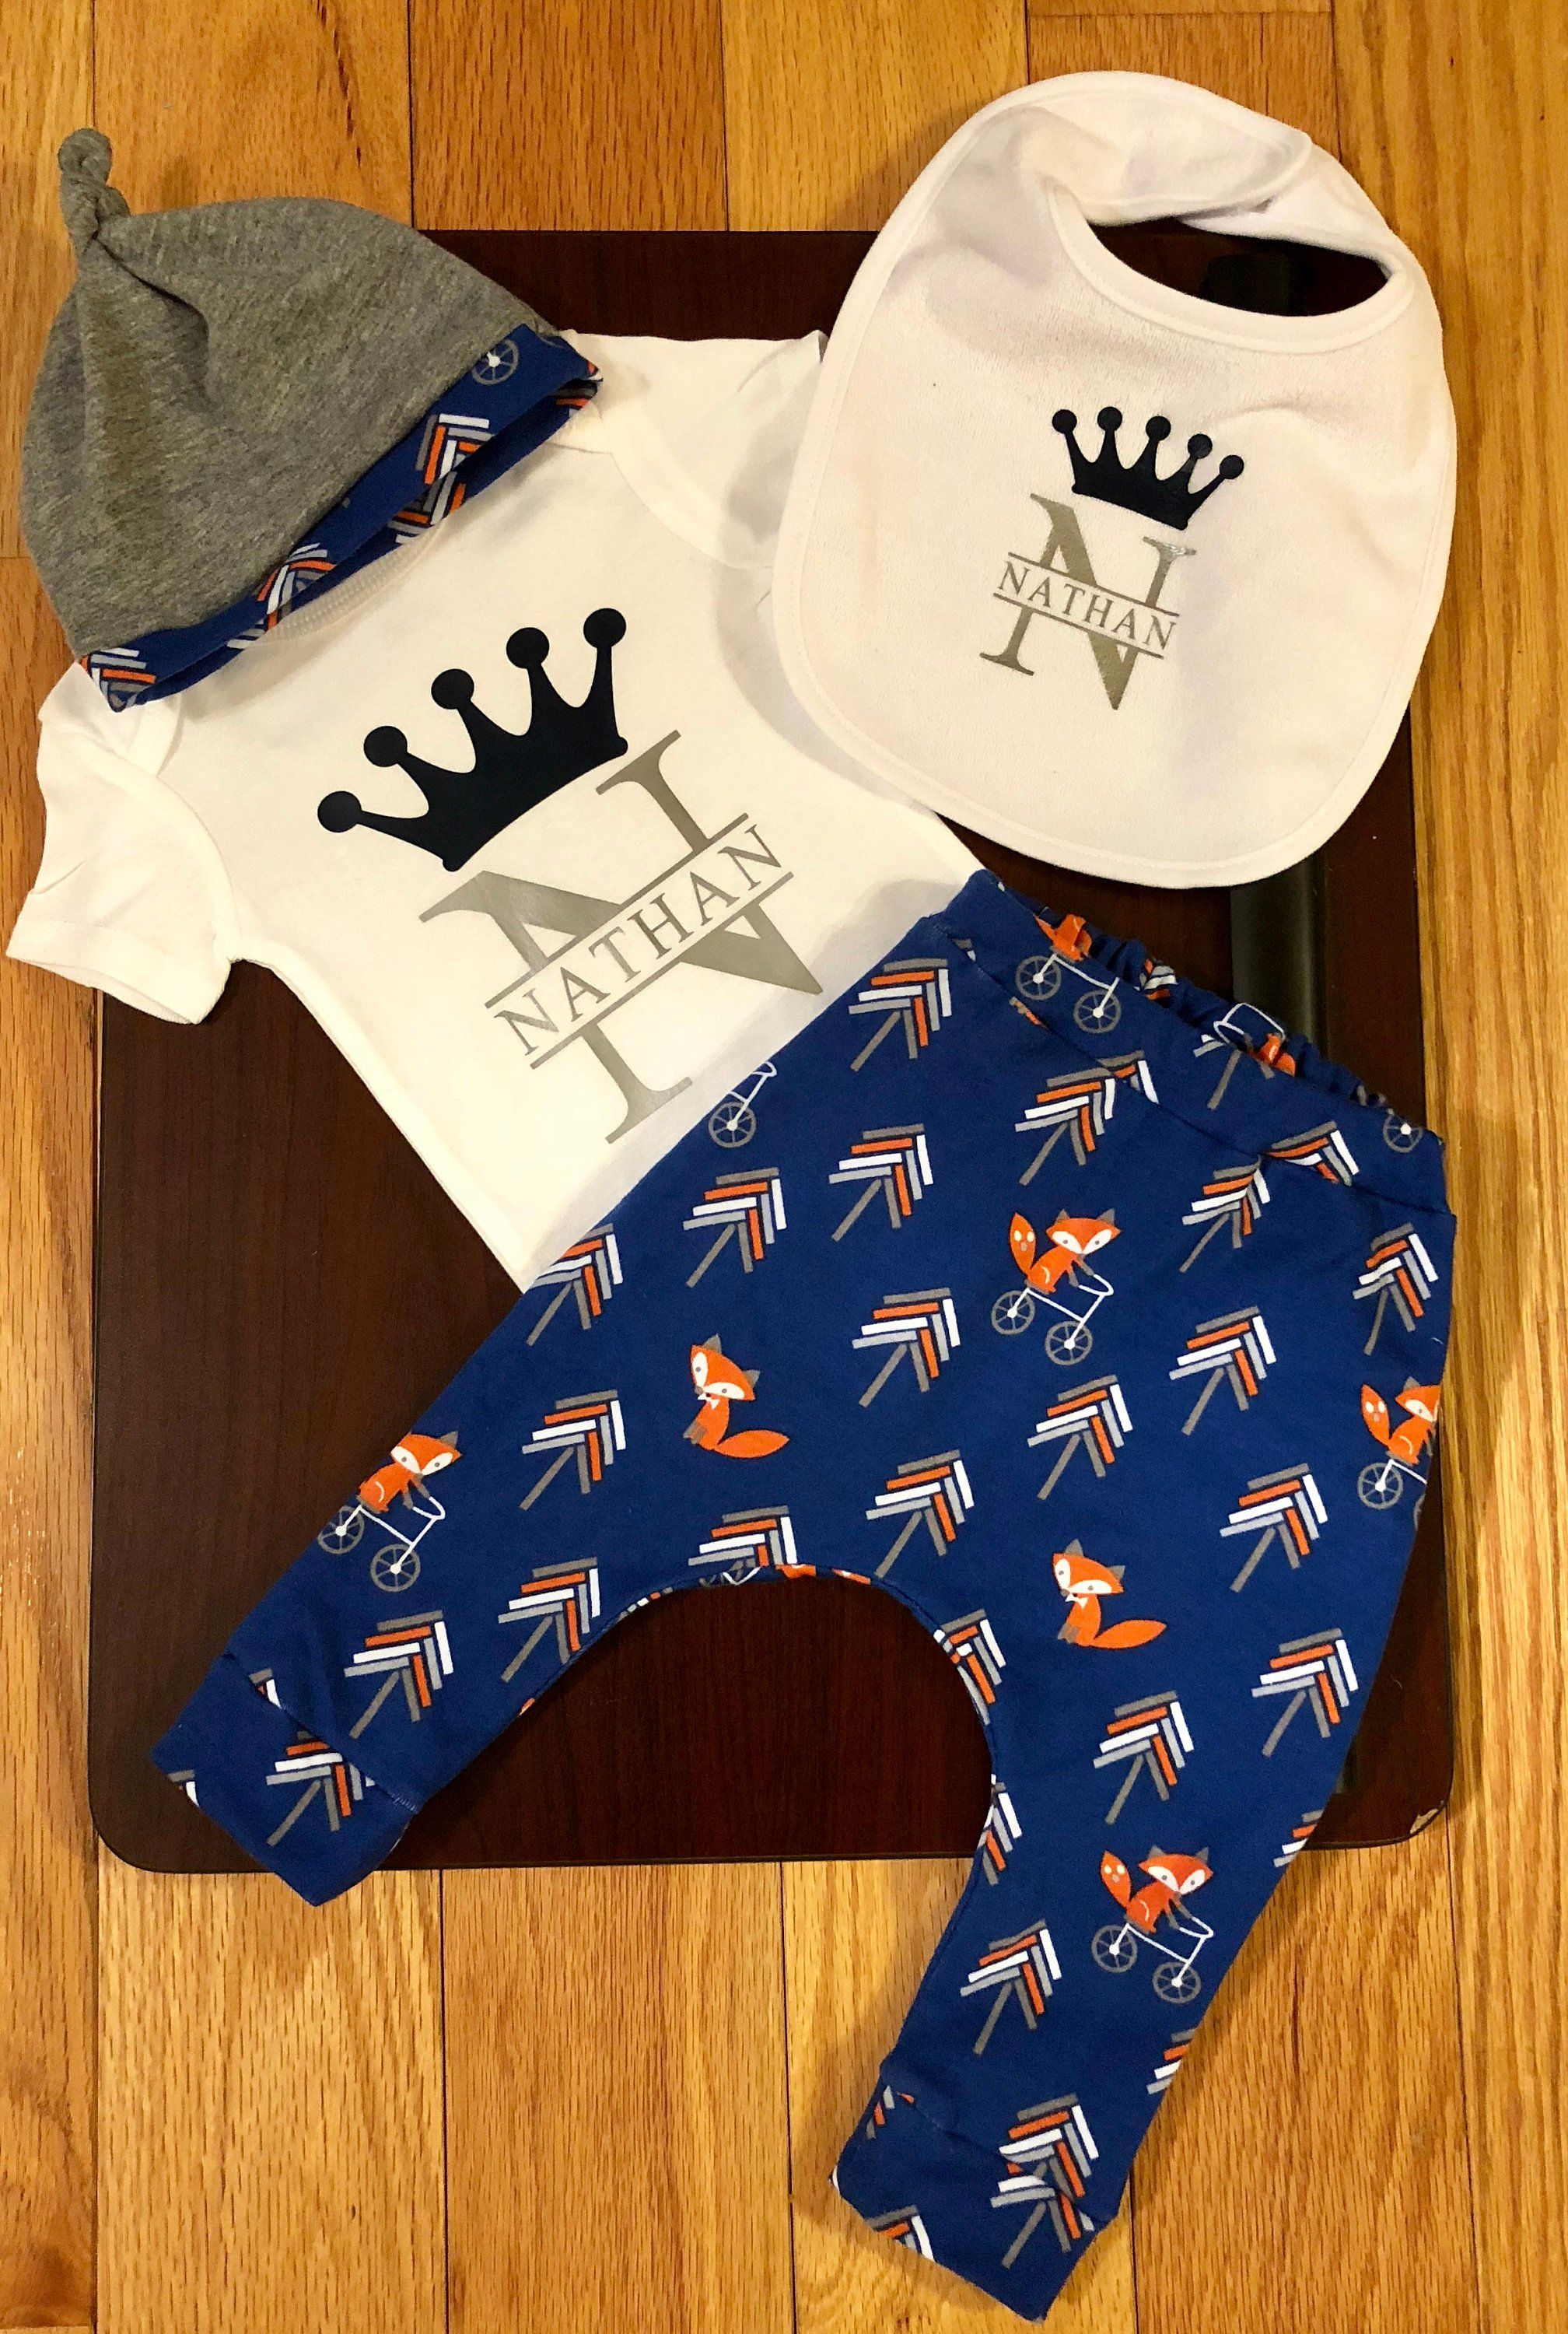 287cce23c Baby Boy Going Home Outfit, Blue Fox Print Harem Pants; Baby Set, Baby Boy  Take Home Outfit, Newborn Set, Personalized Baby Gift by  BeyondBowsByNathalie on ...